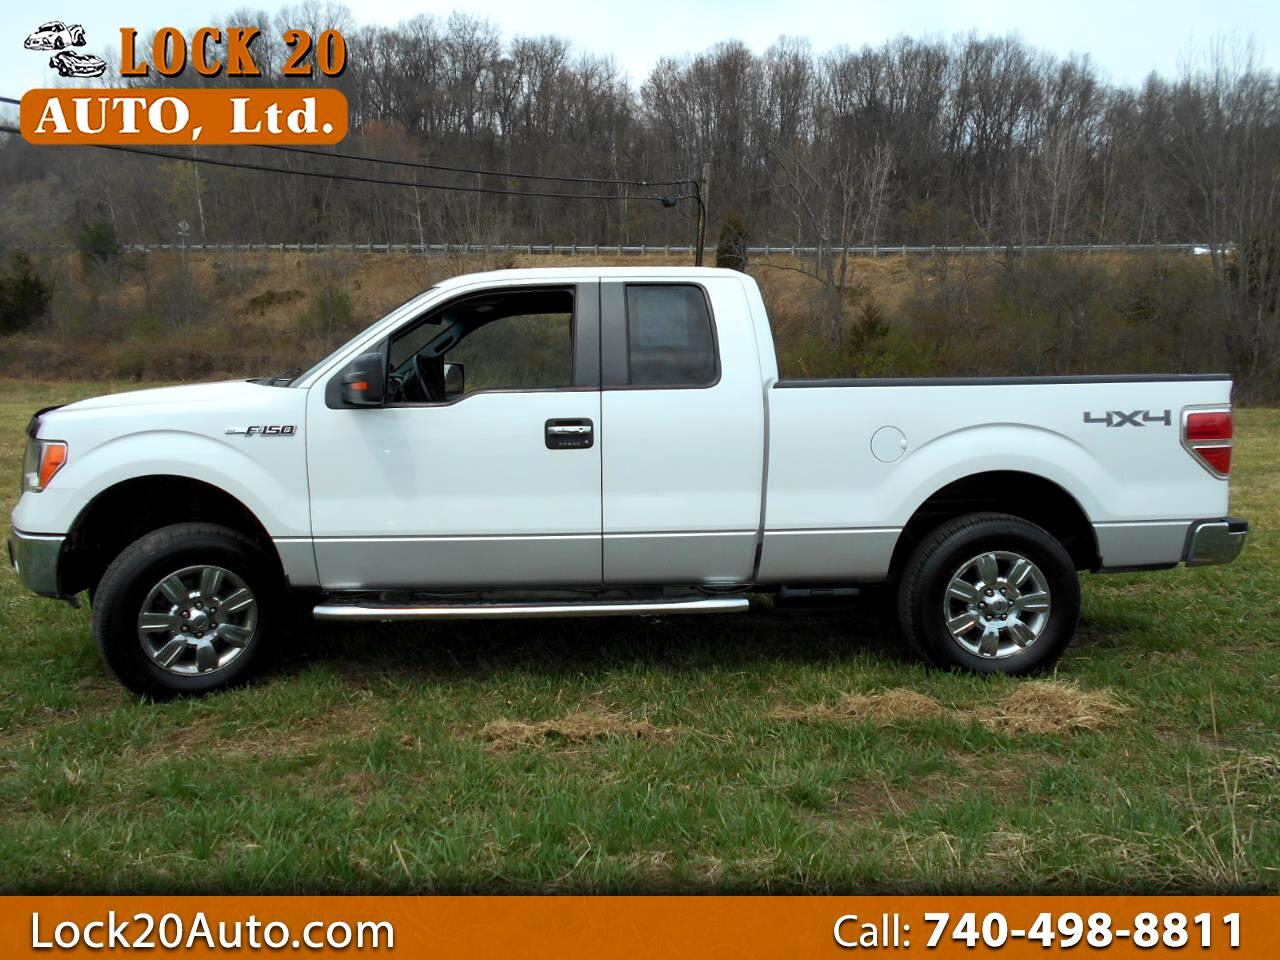 2011 Ford F-150 SUPER CAB